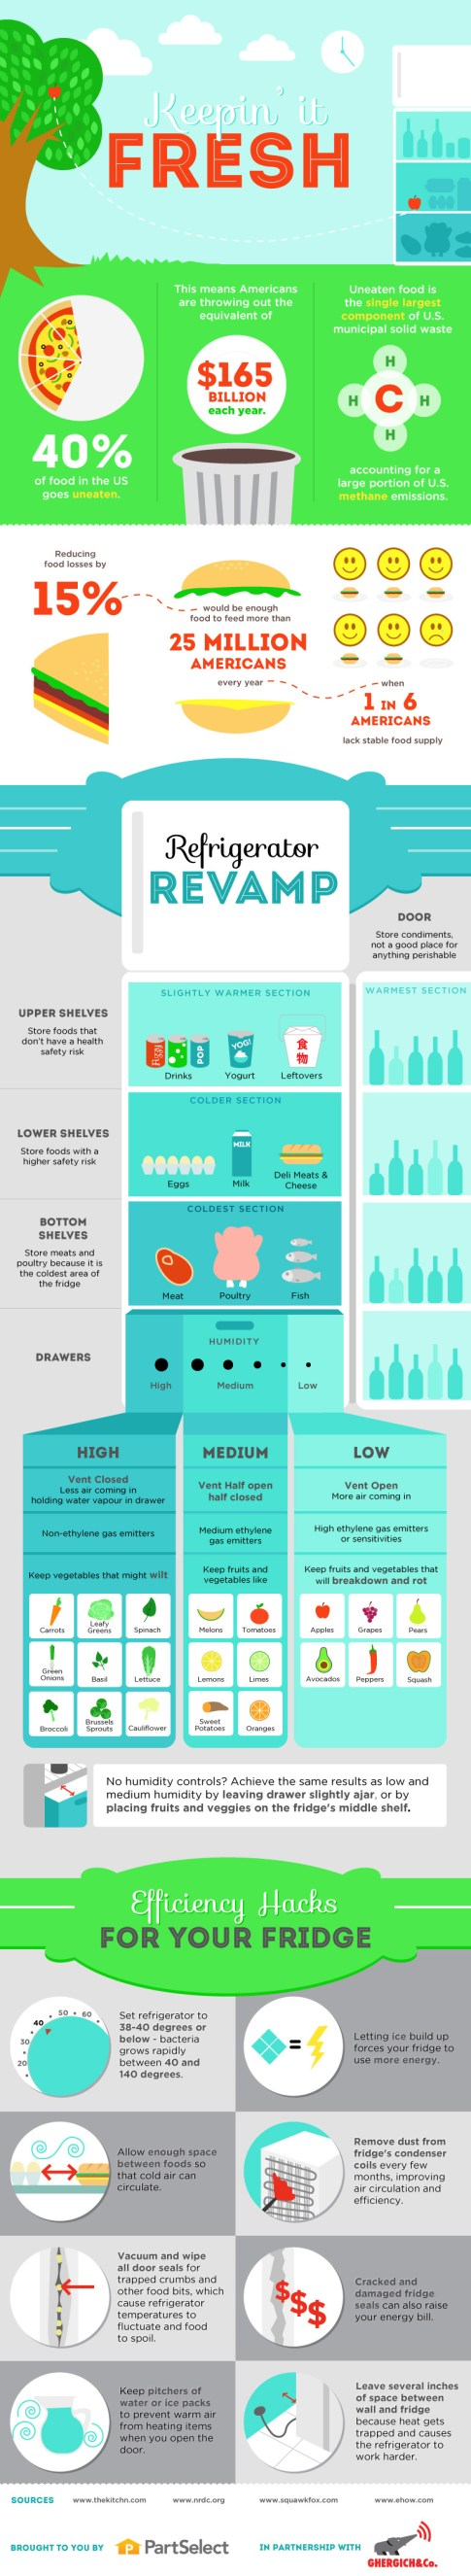 Make your refrigerator more efficient!